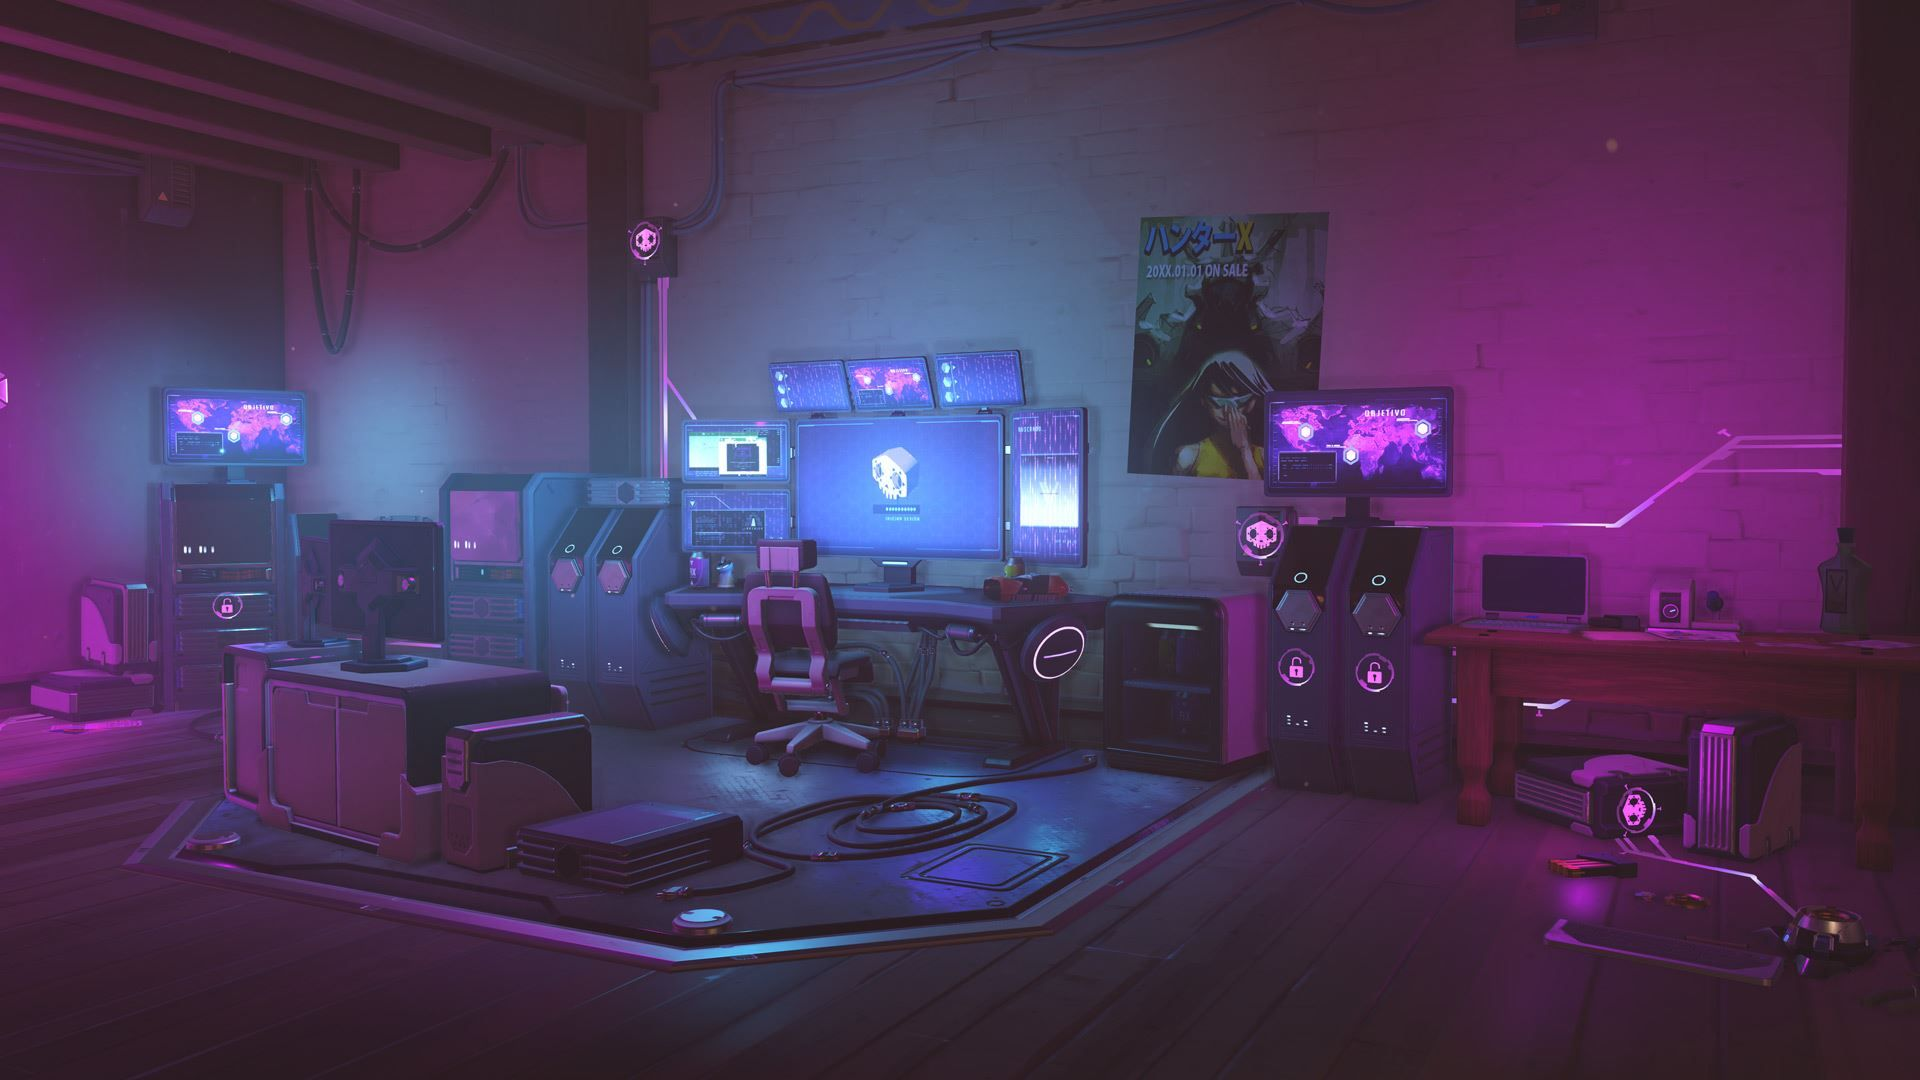 Image For Sombra Cyber Room In 2019 Wallpaper Pc